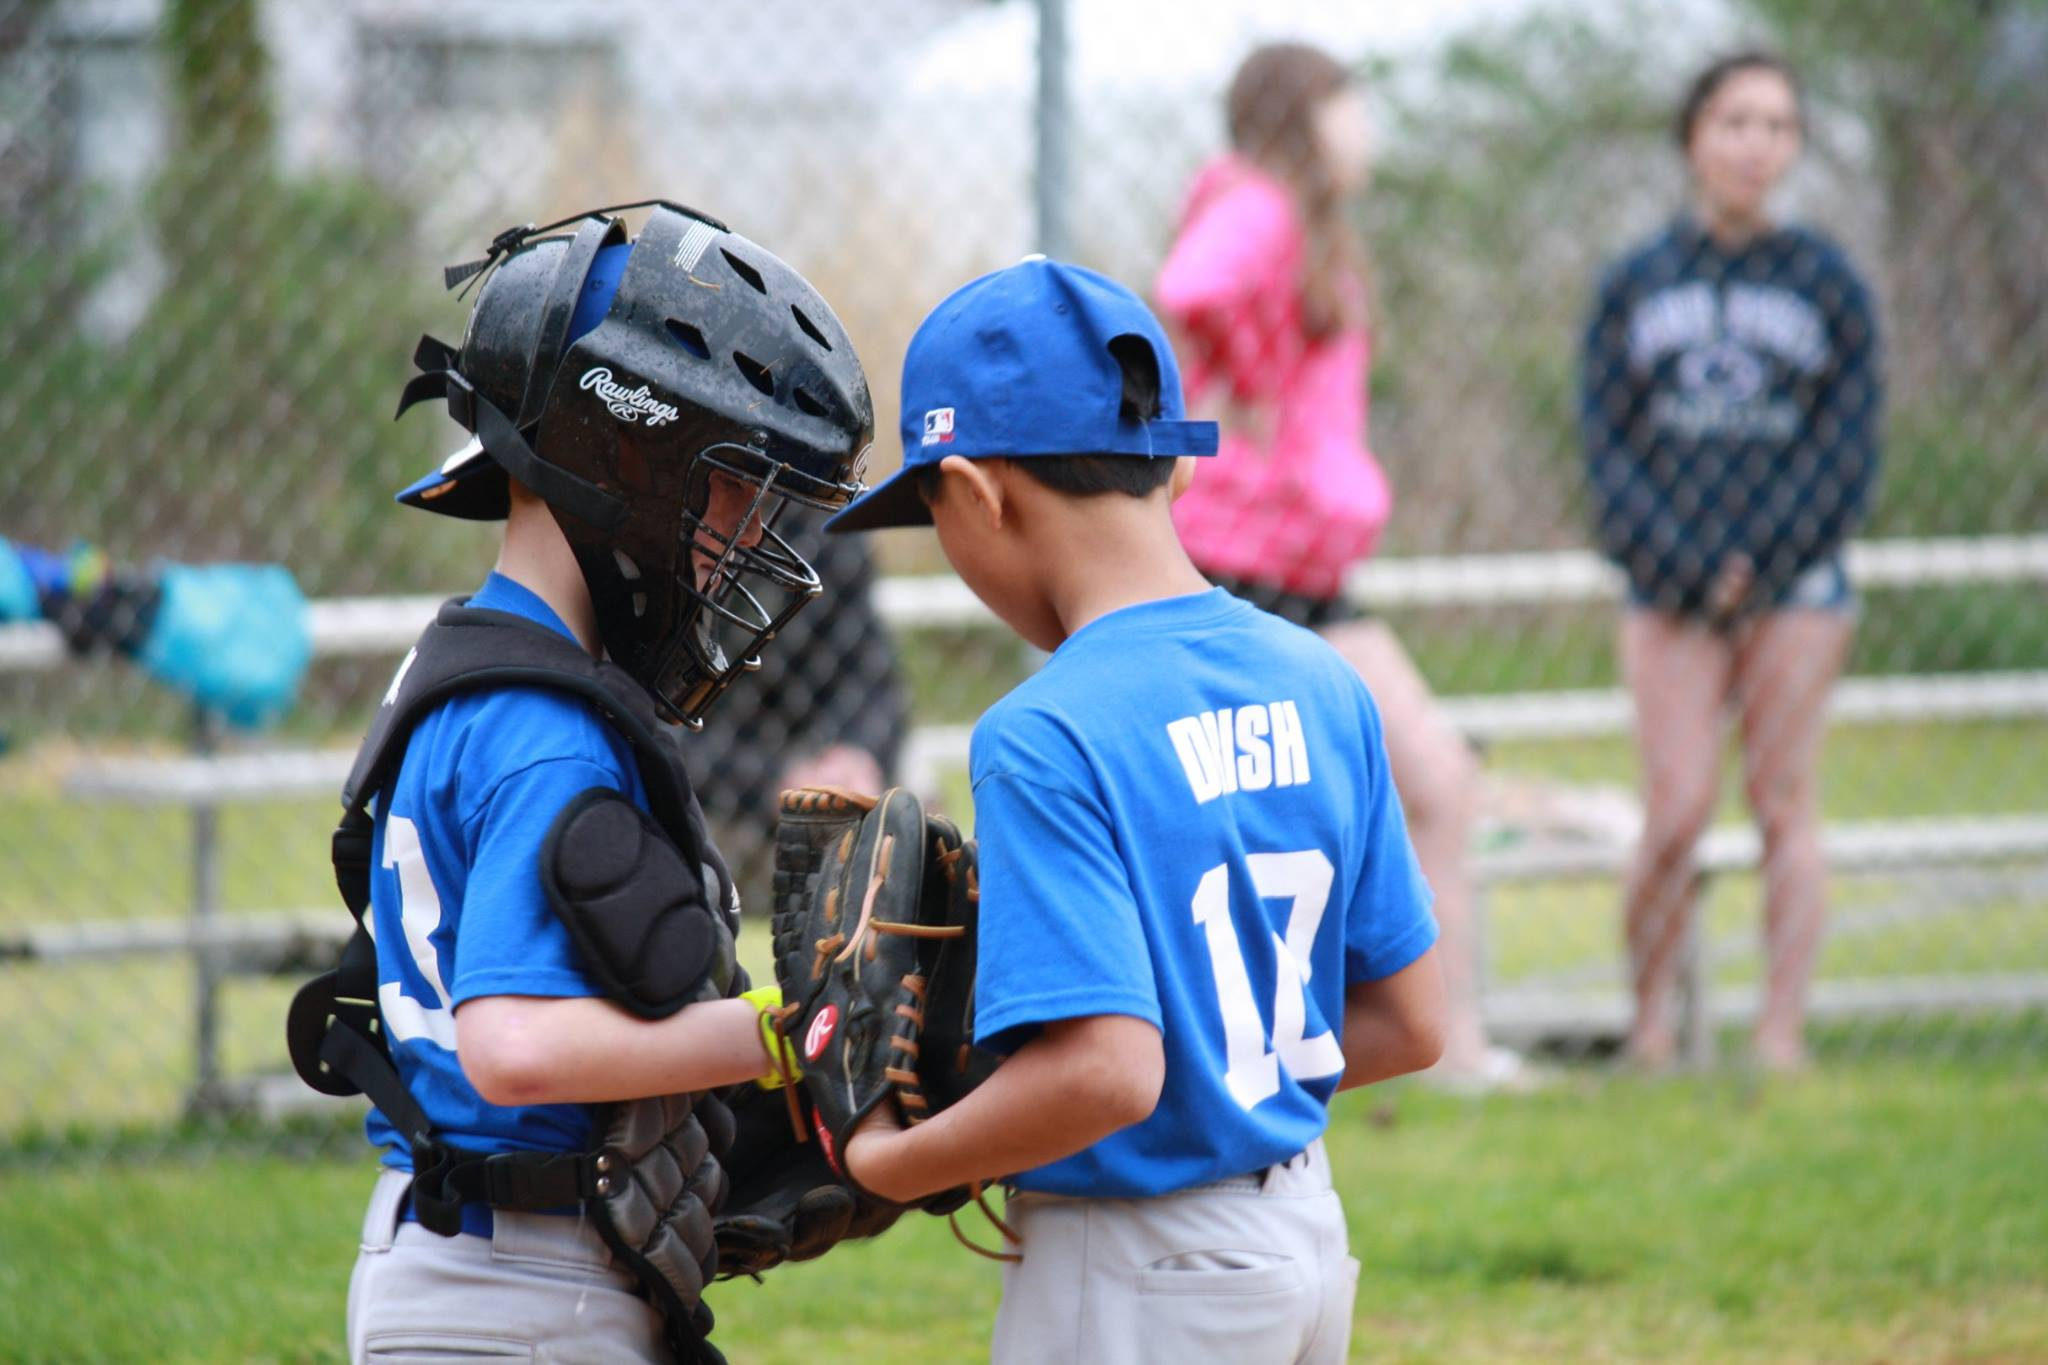 Pitcher and catcher conference